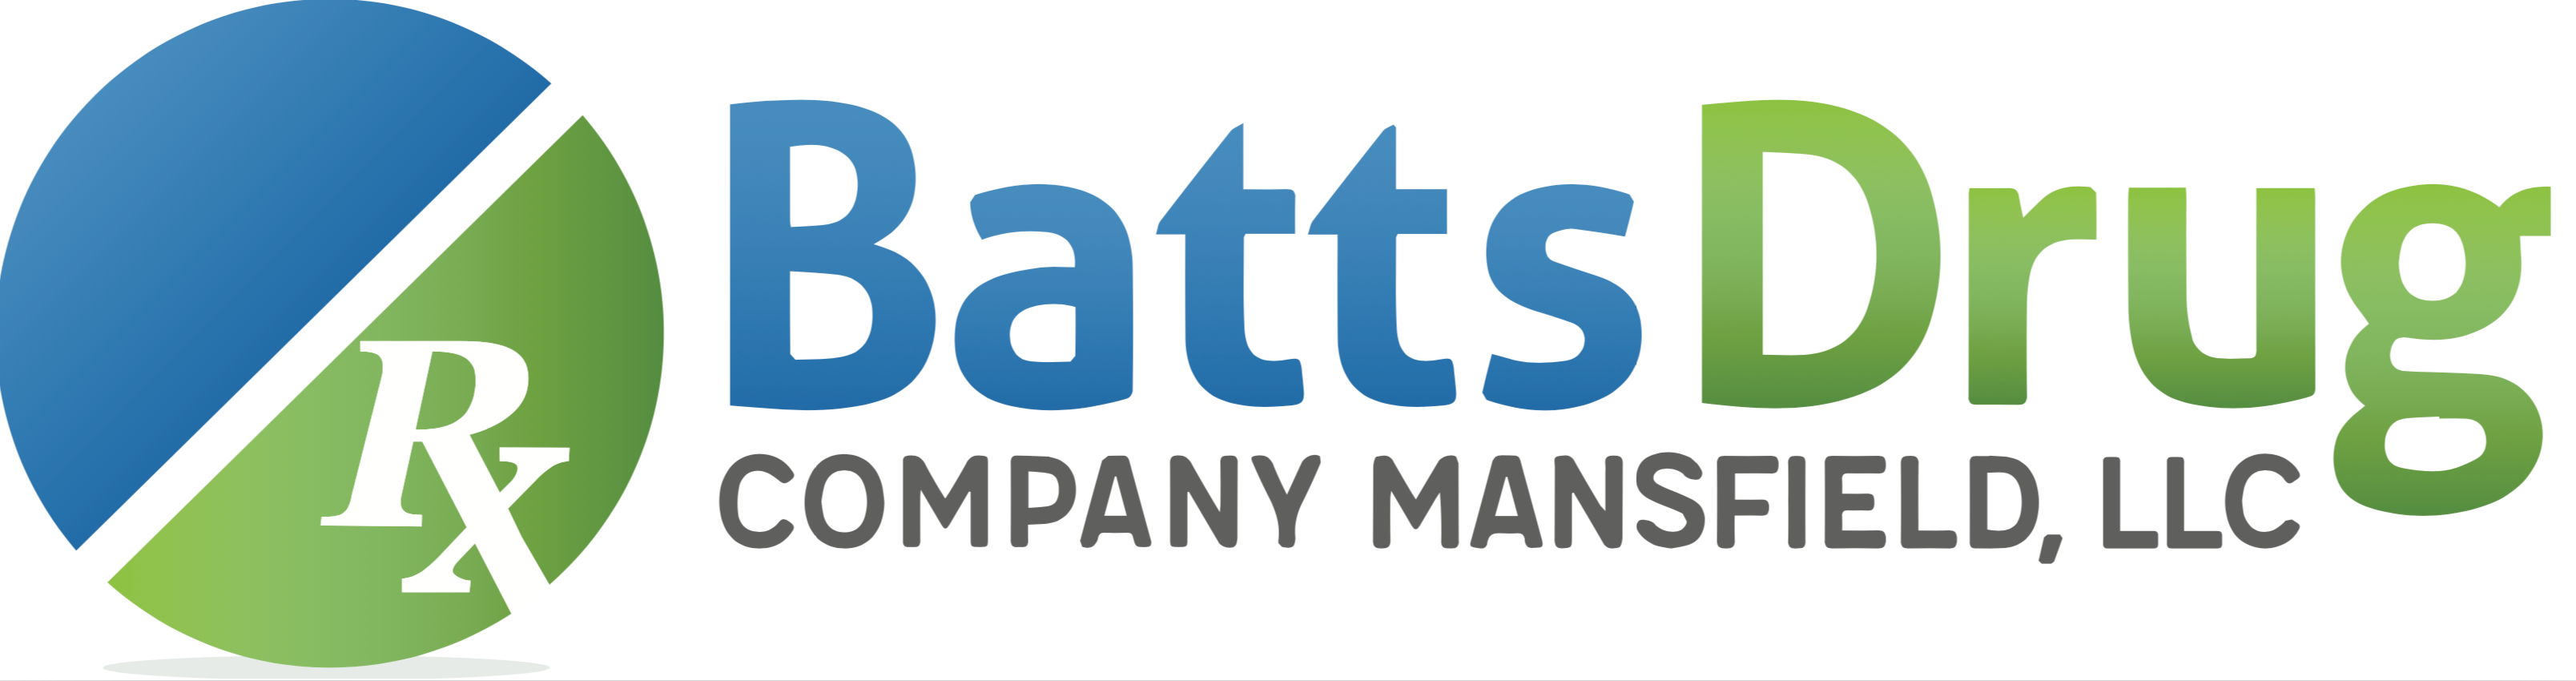 Batts Drug Company - Mansfield